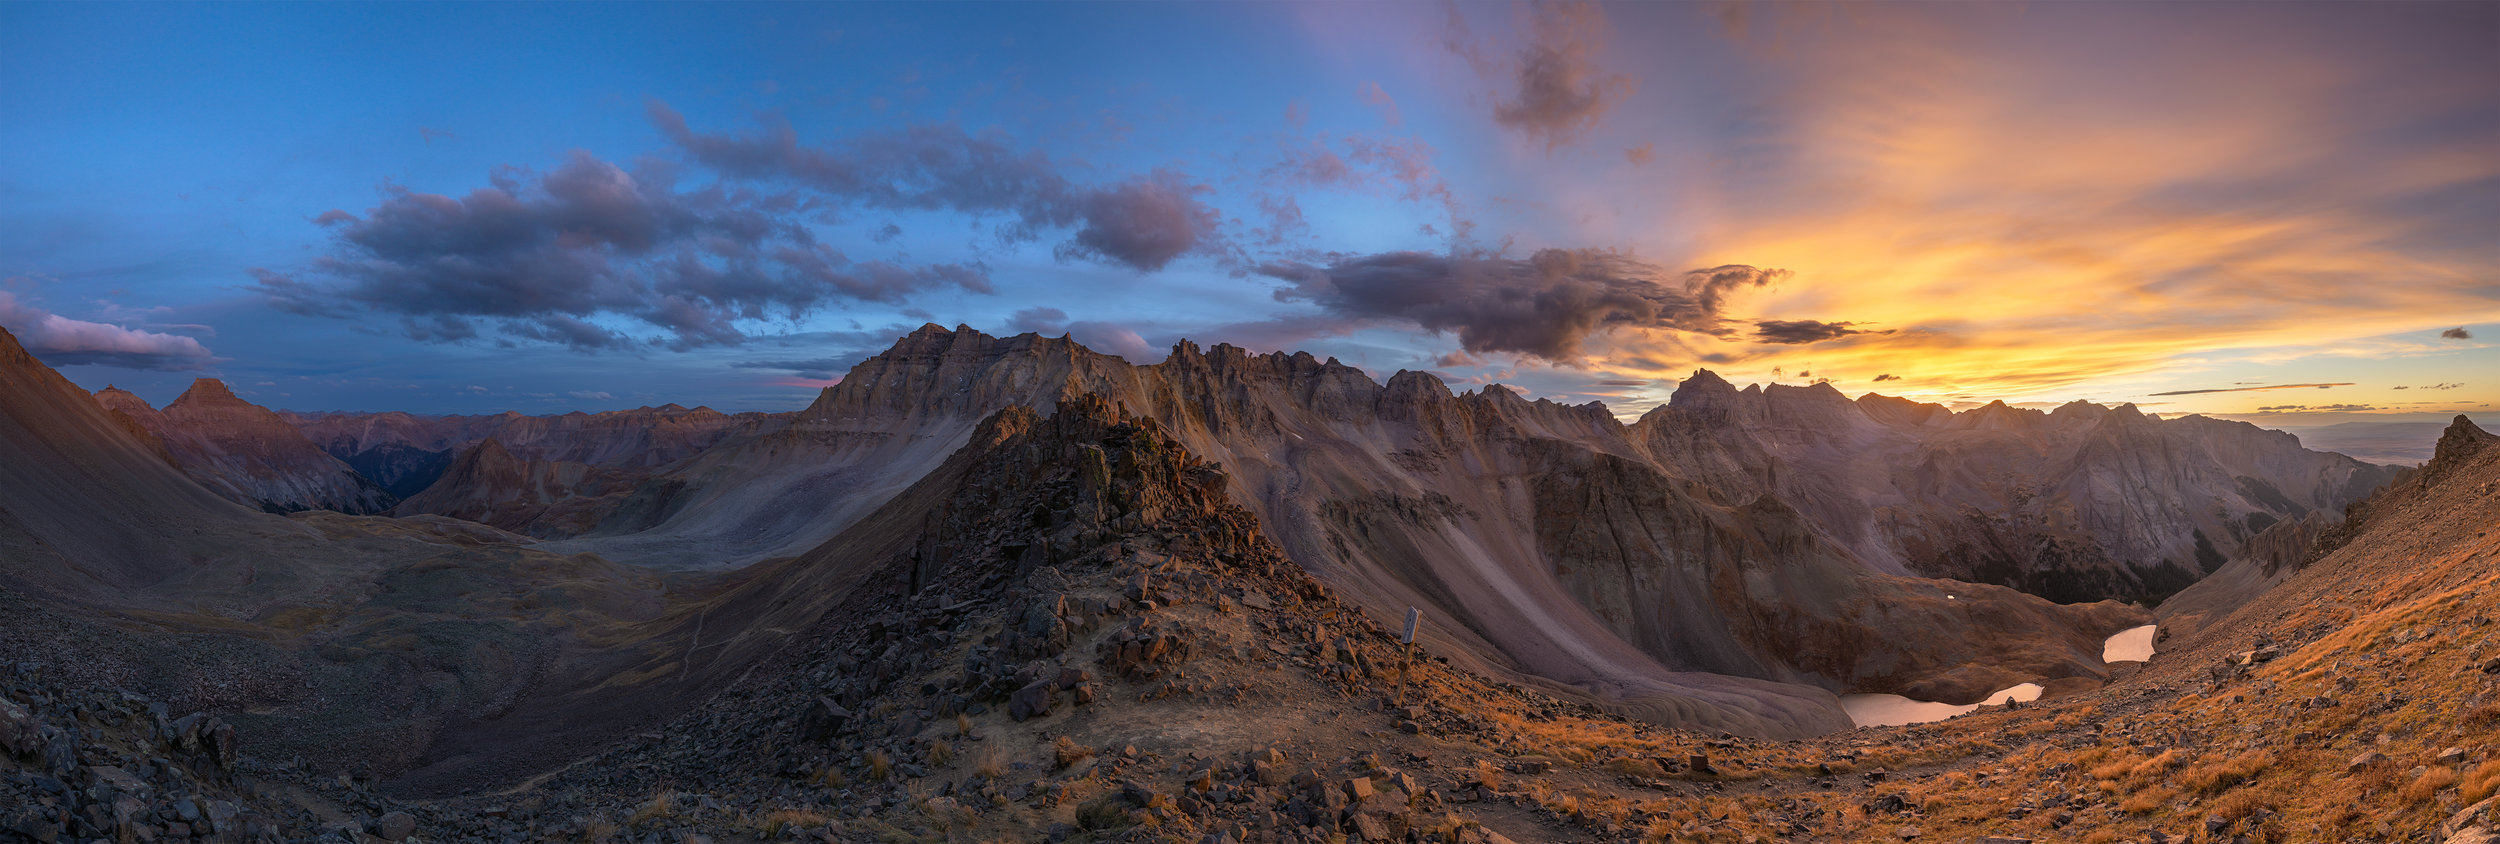 Blue Lakes Pass at sunset, in the Mt Sneffels Wilderness Area.